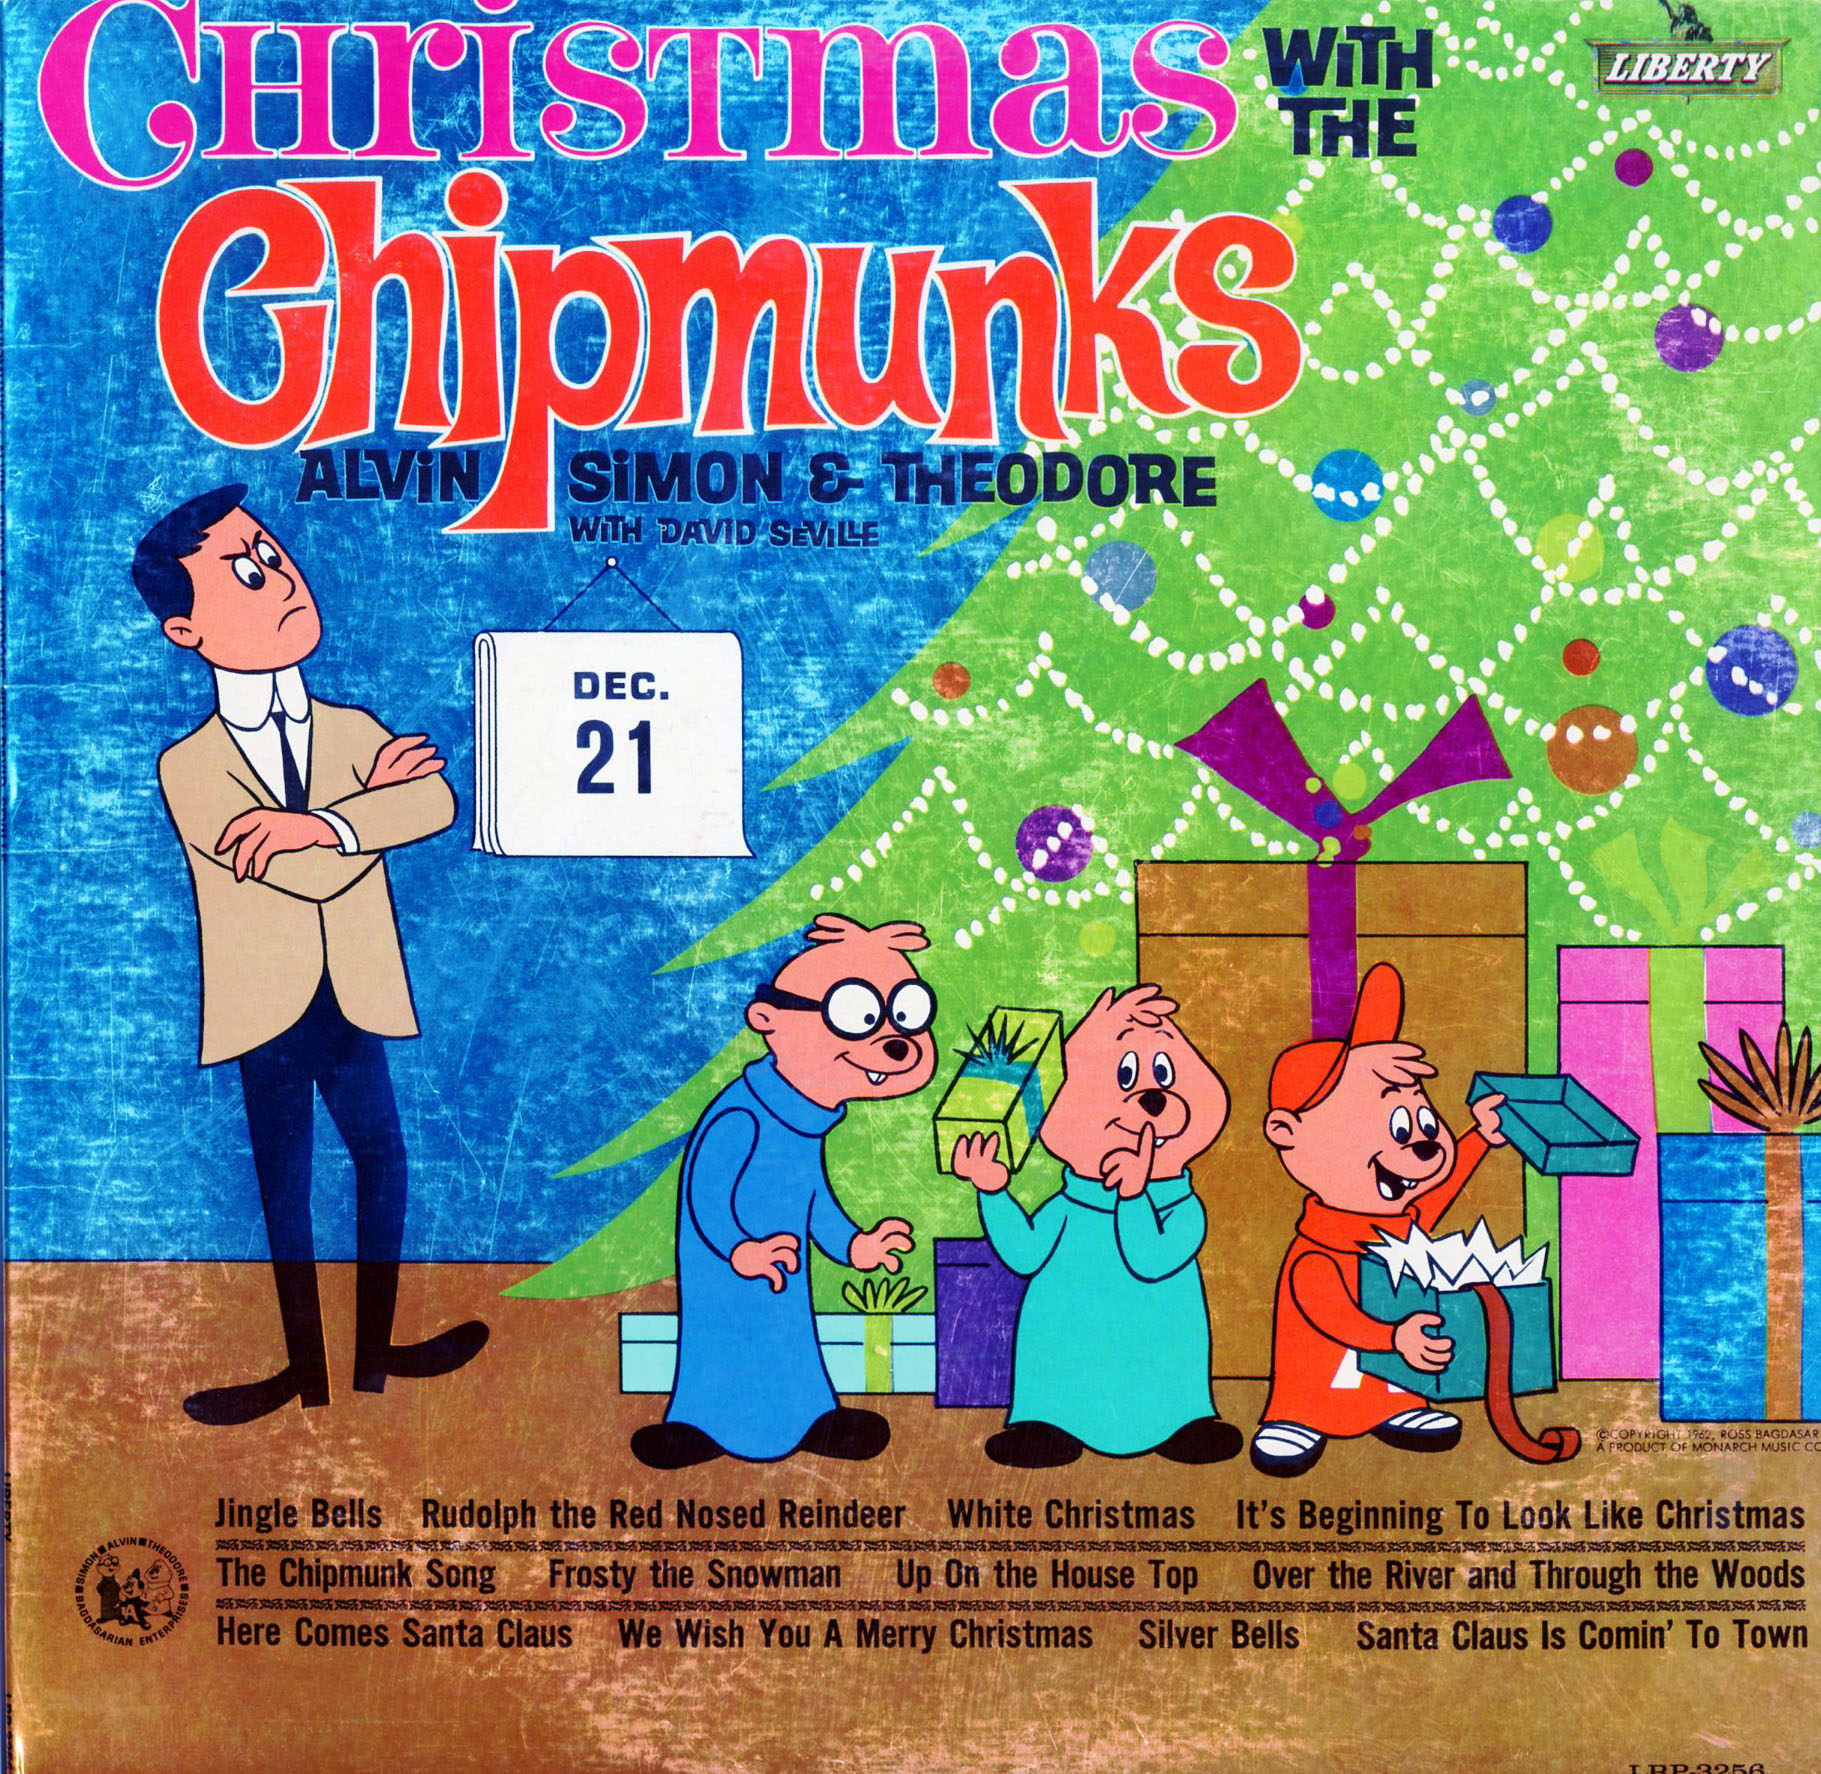 alvin simon theodore david seville the chipmunk song december 1962 - Alvin And The Chipmunks Christmas Songs